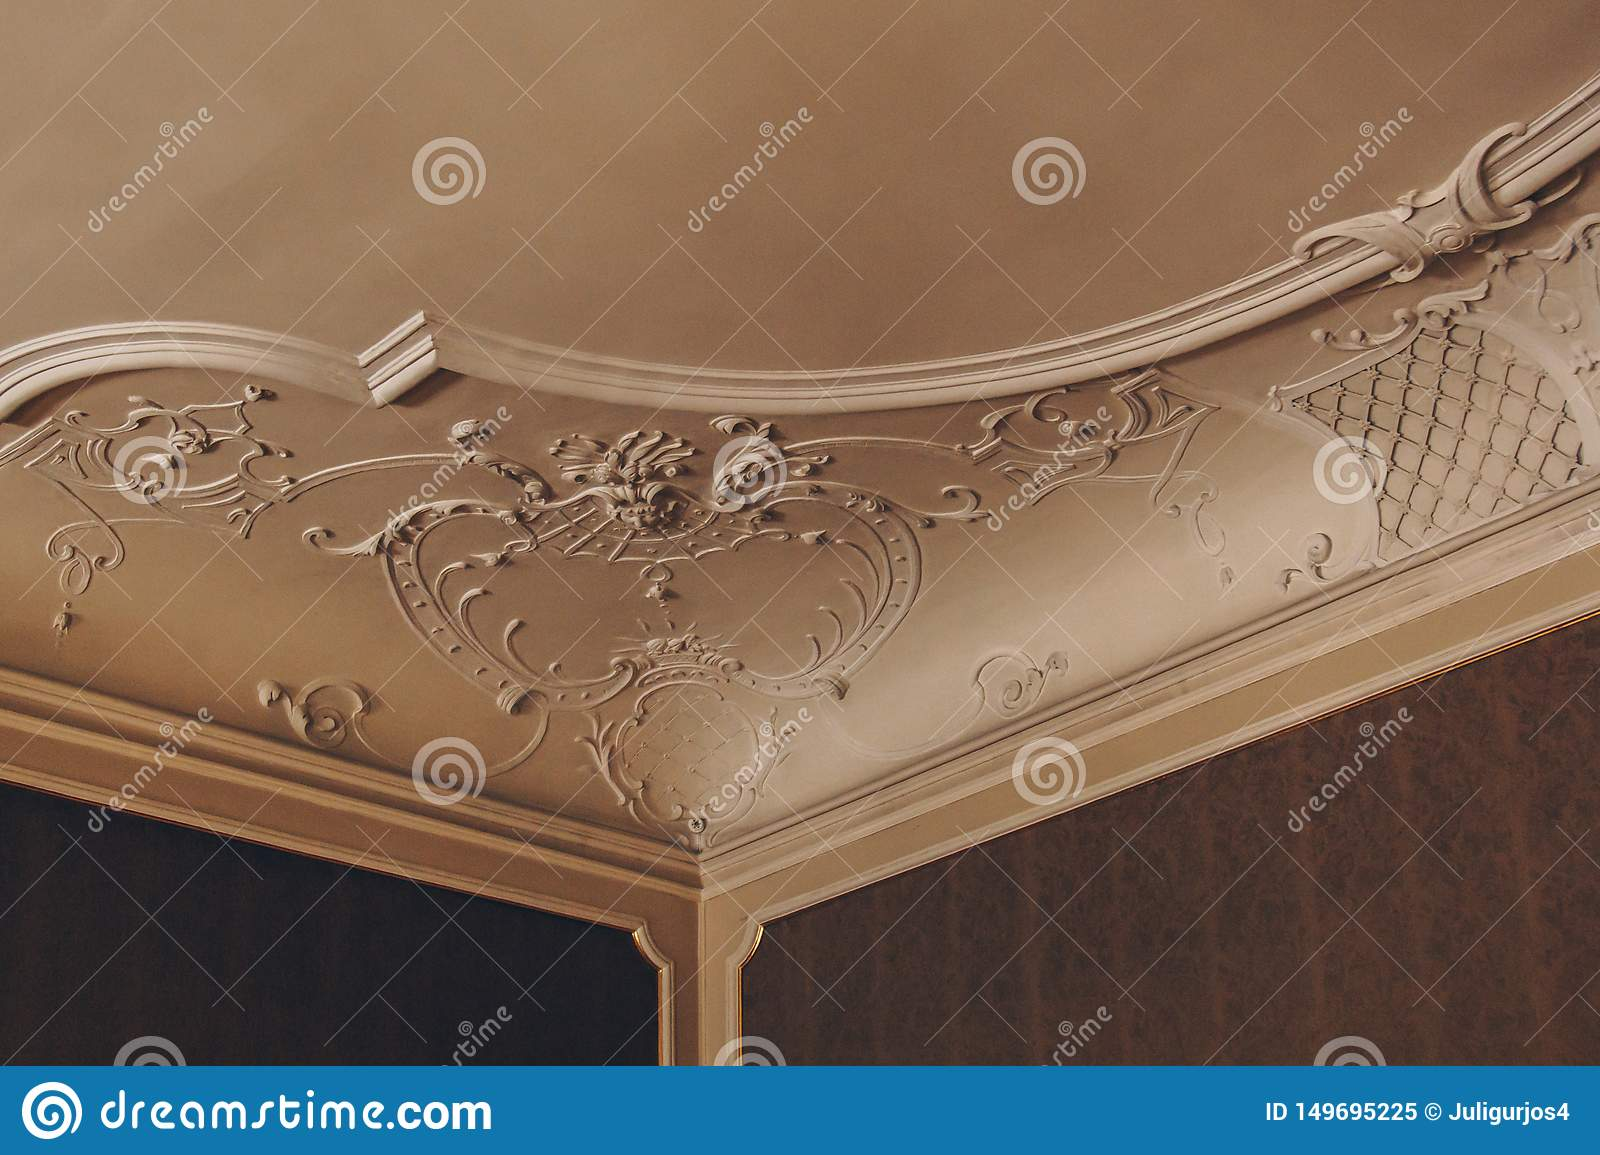 Luxury pattern stucco on the wall and ceiling. interior texture, background